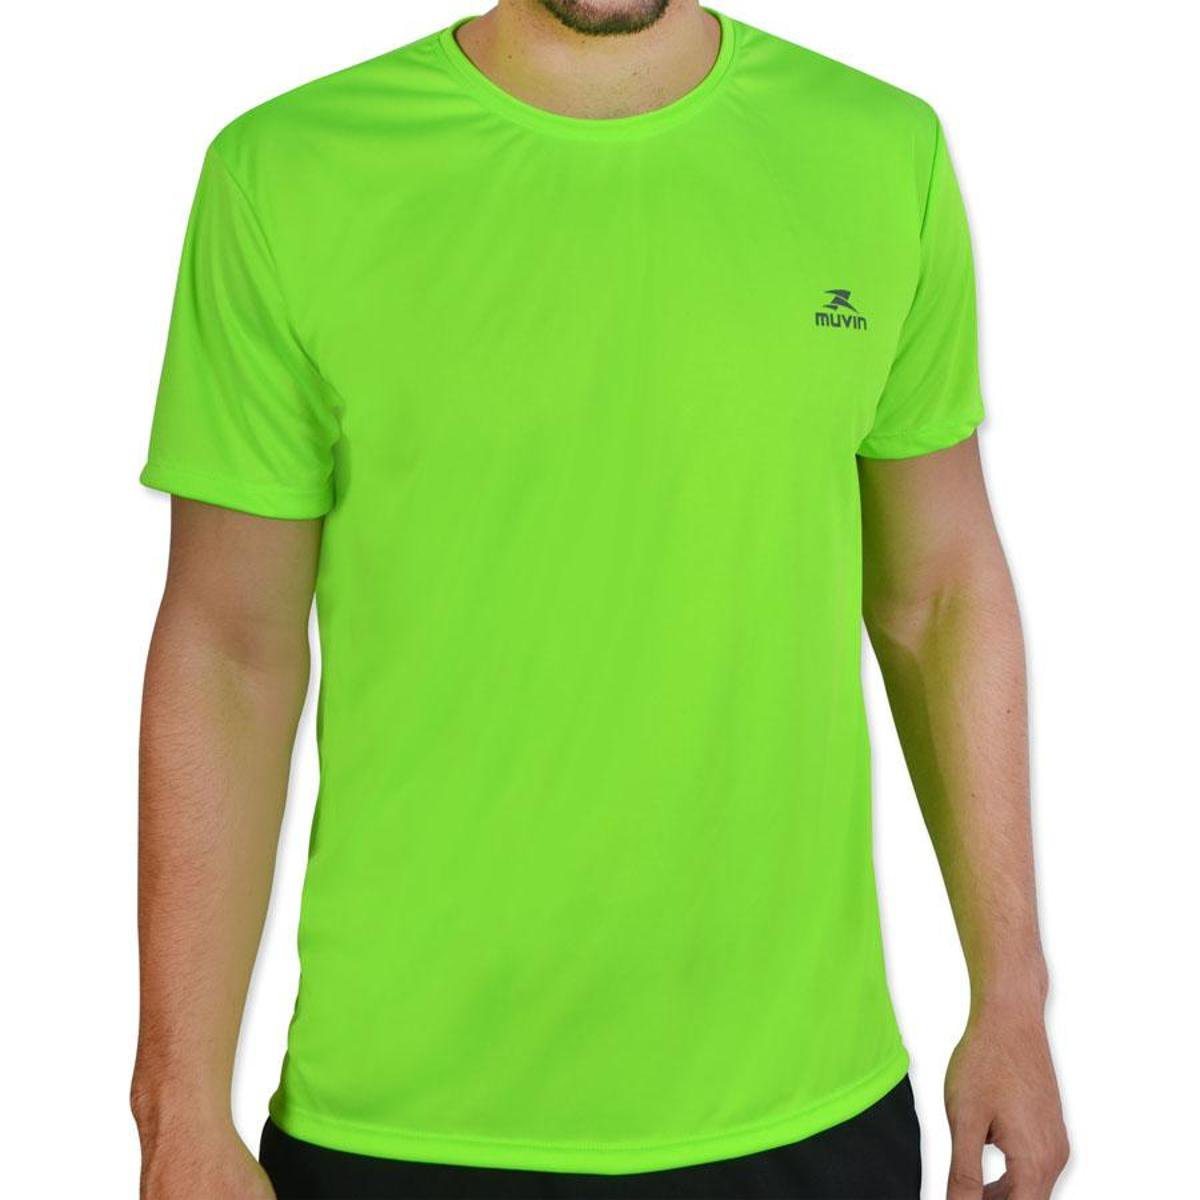 Limão Camiseta Color Camiseta Color Workout Workout Limão Color Verde Dry Camiseta Dry Verde Muvin SS SS Muvin faCcFfqw